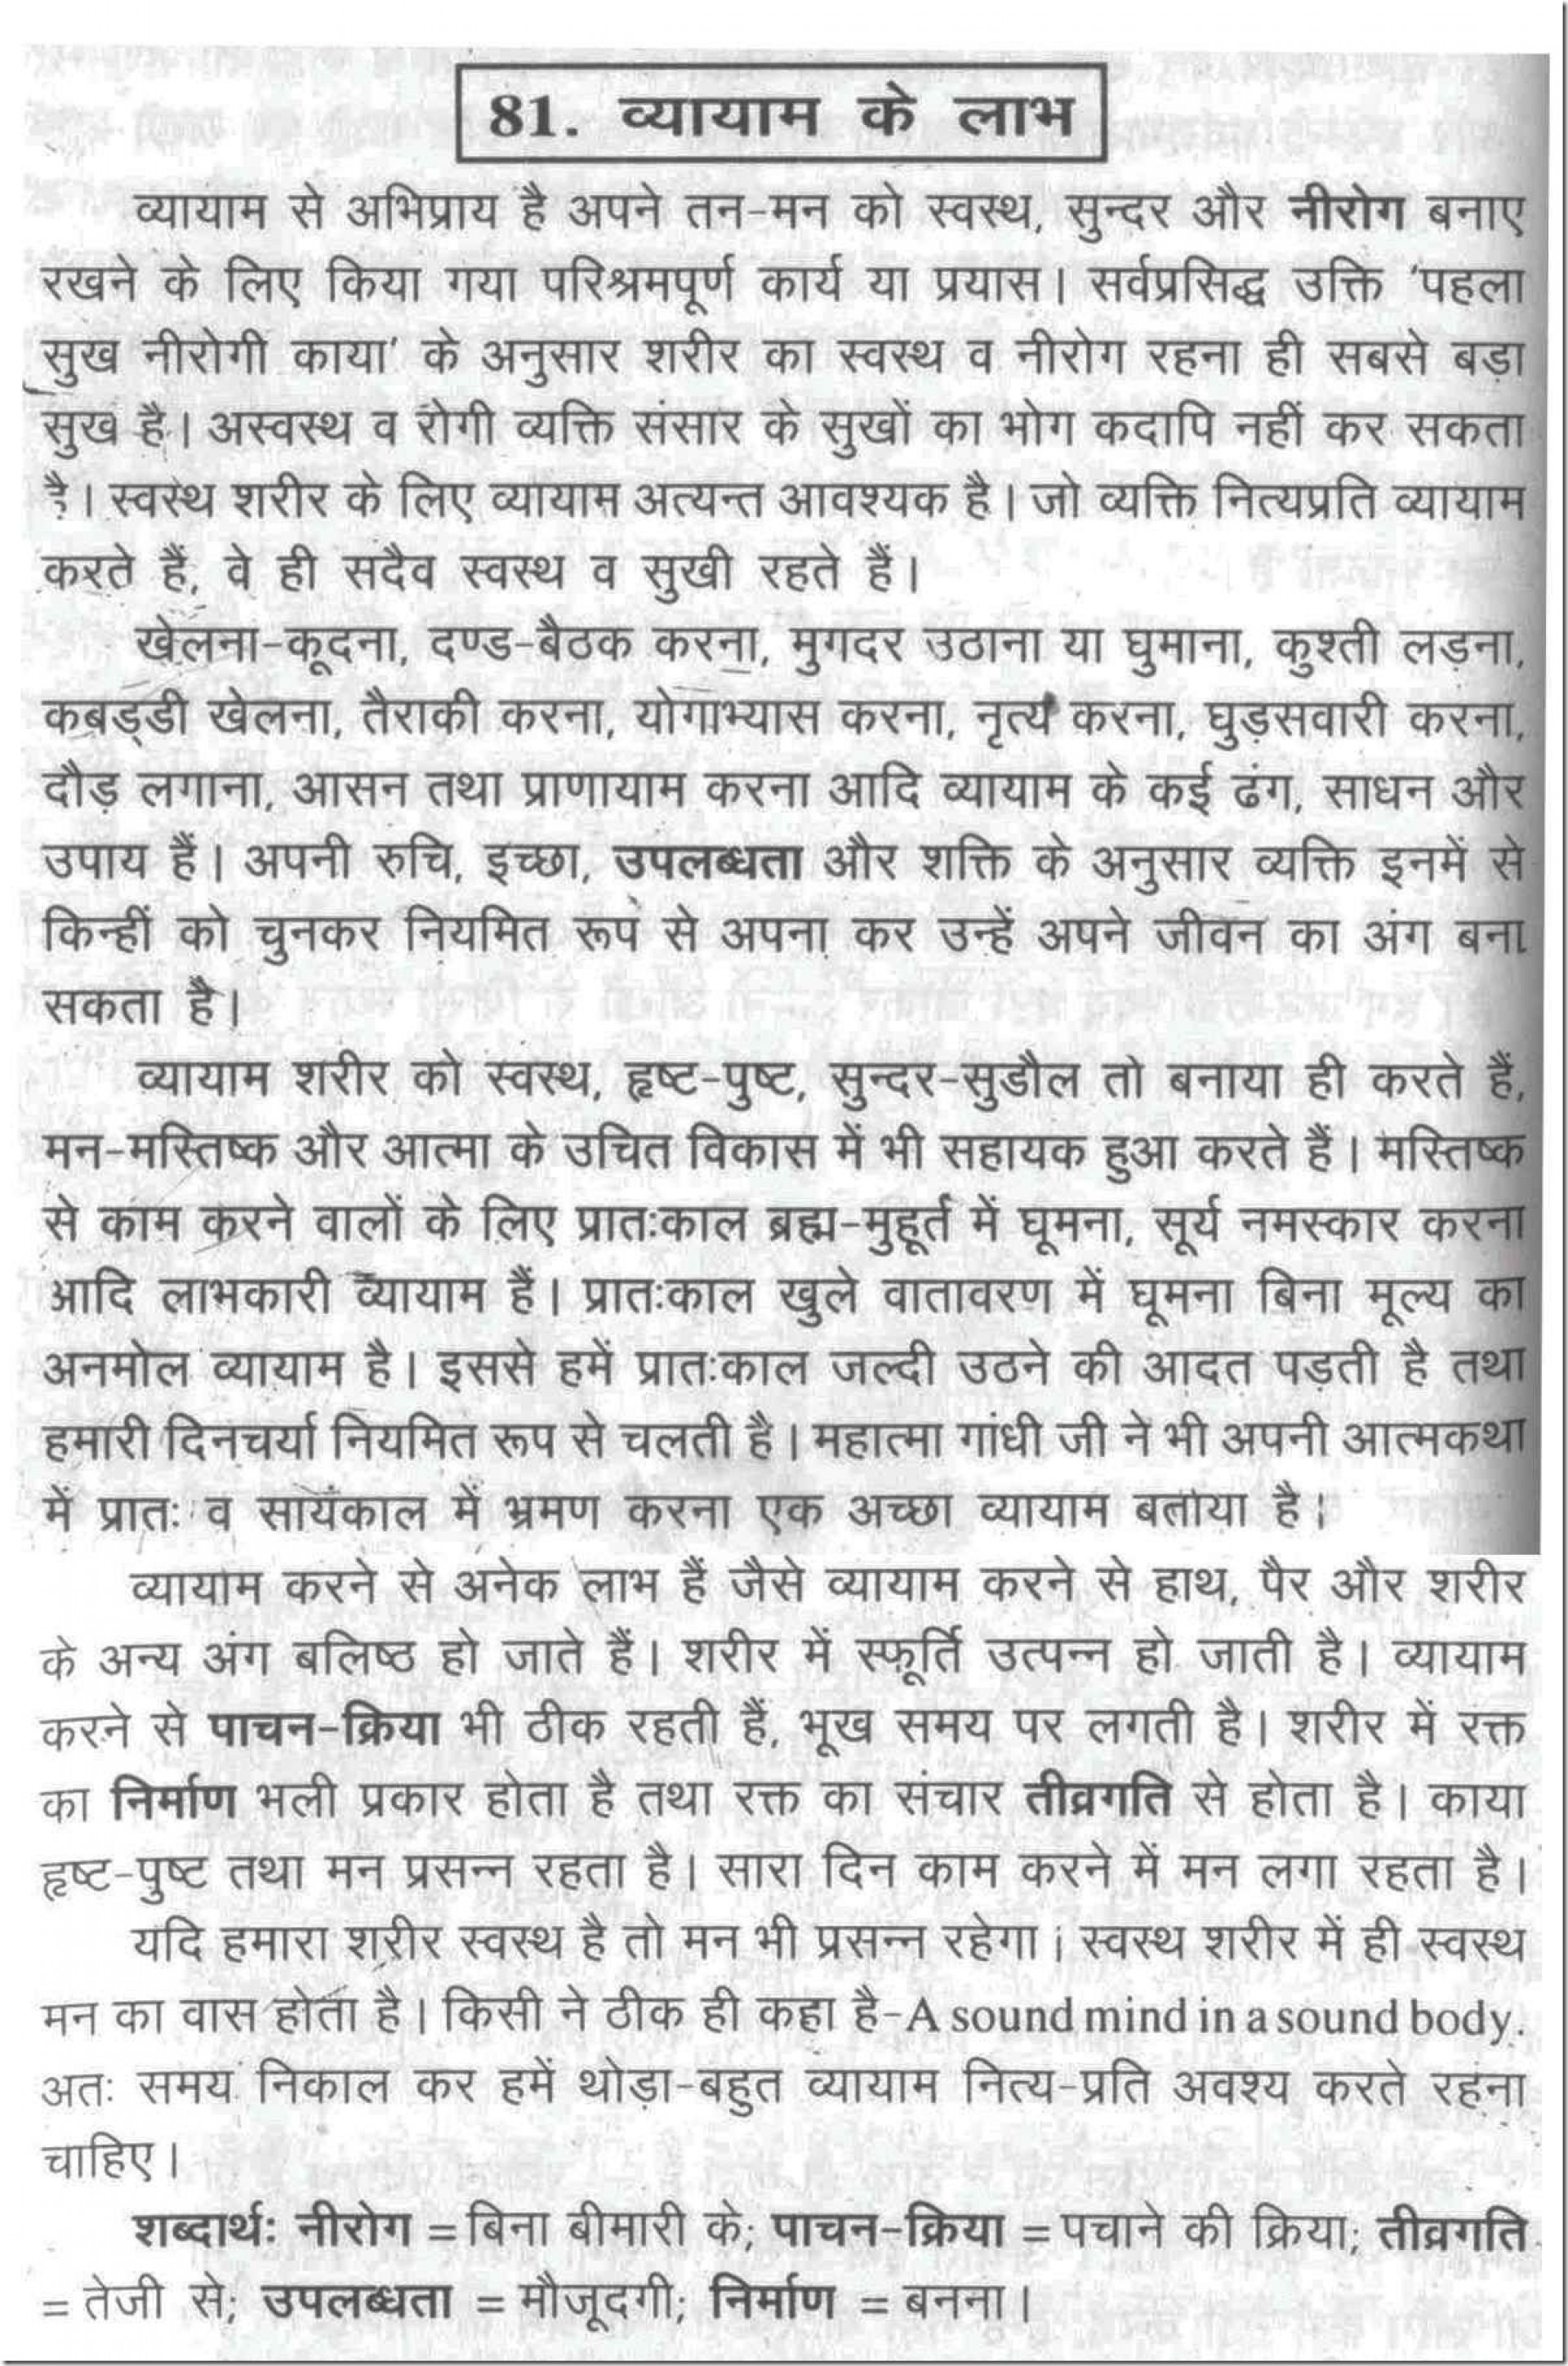 011 2563478896 Essay On Health And Fitness Through Food Good Habits In Hindi Exceptional Bad Eating Habit 1920